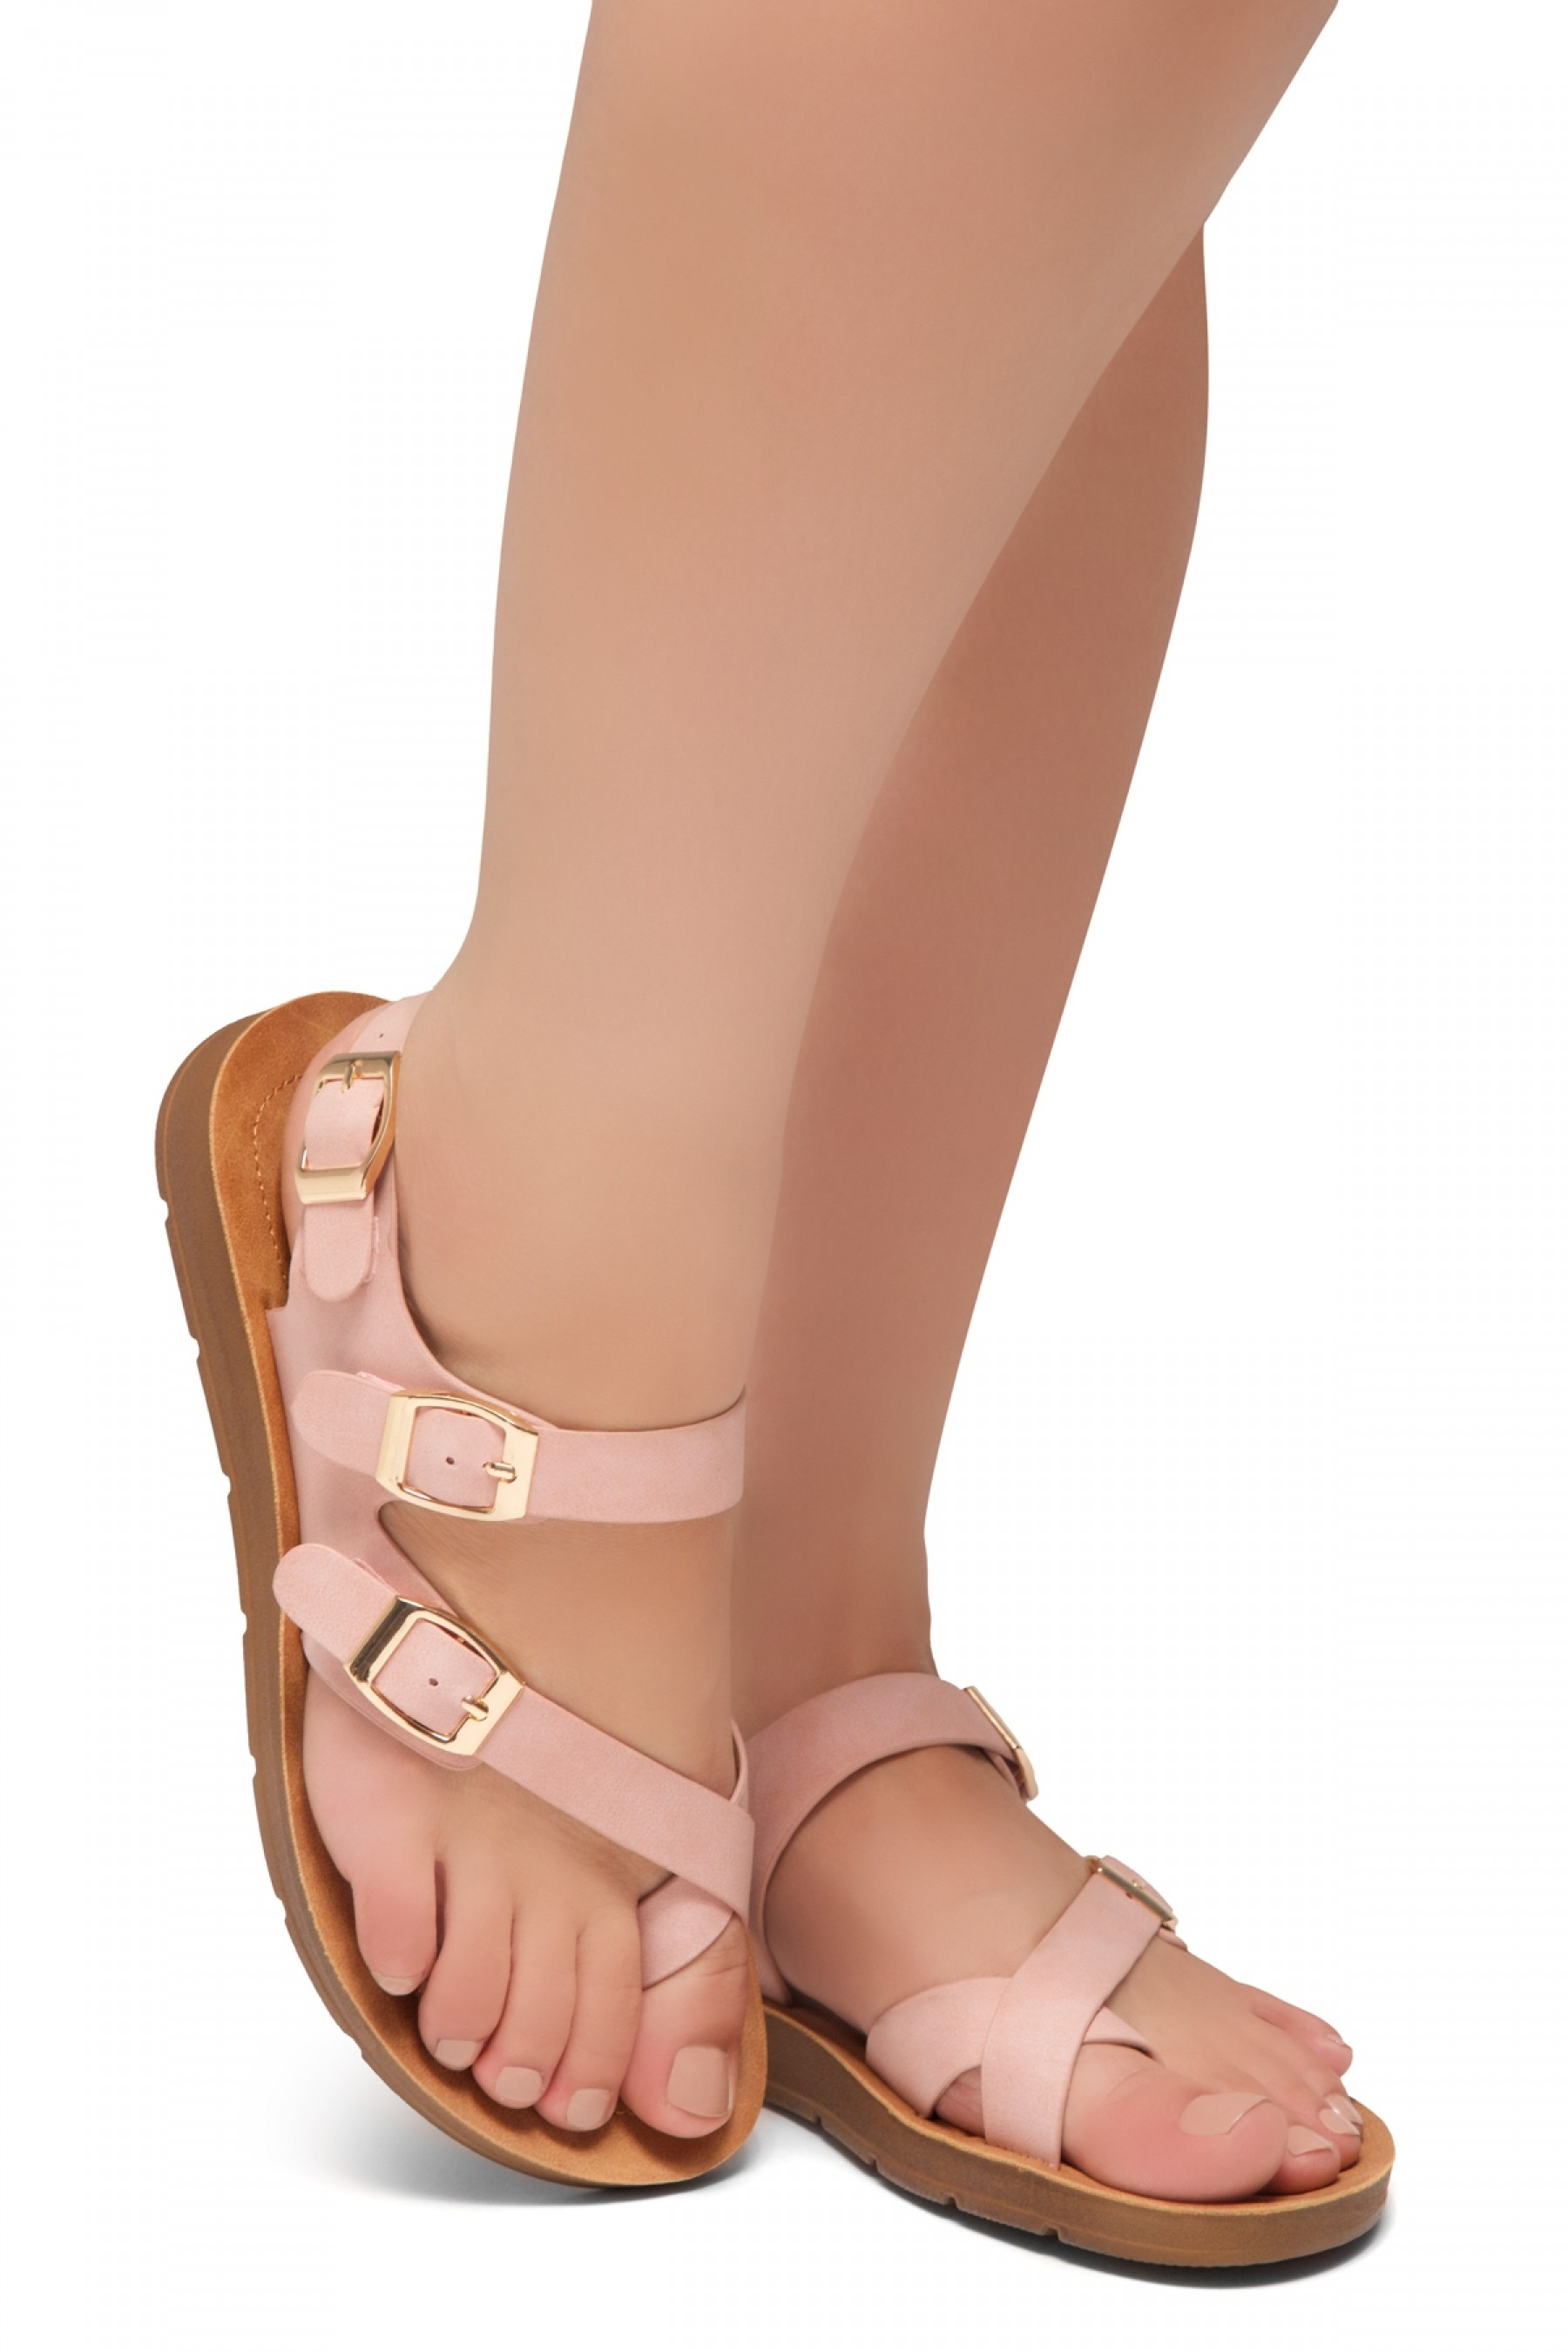 HerStyle Women's Manmade SURE THING- Flat Sandal with buckle accents(Blush)